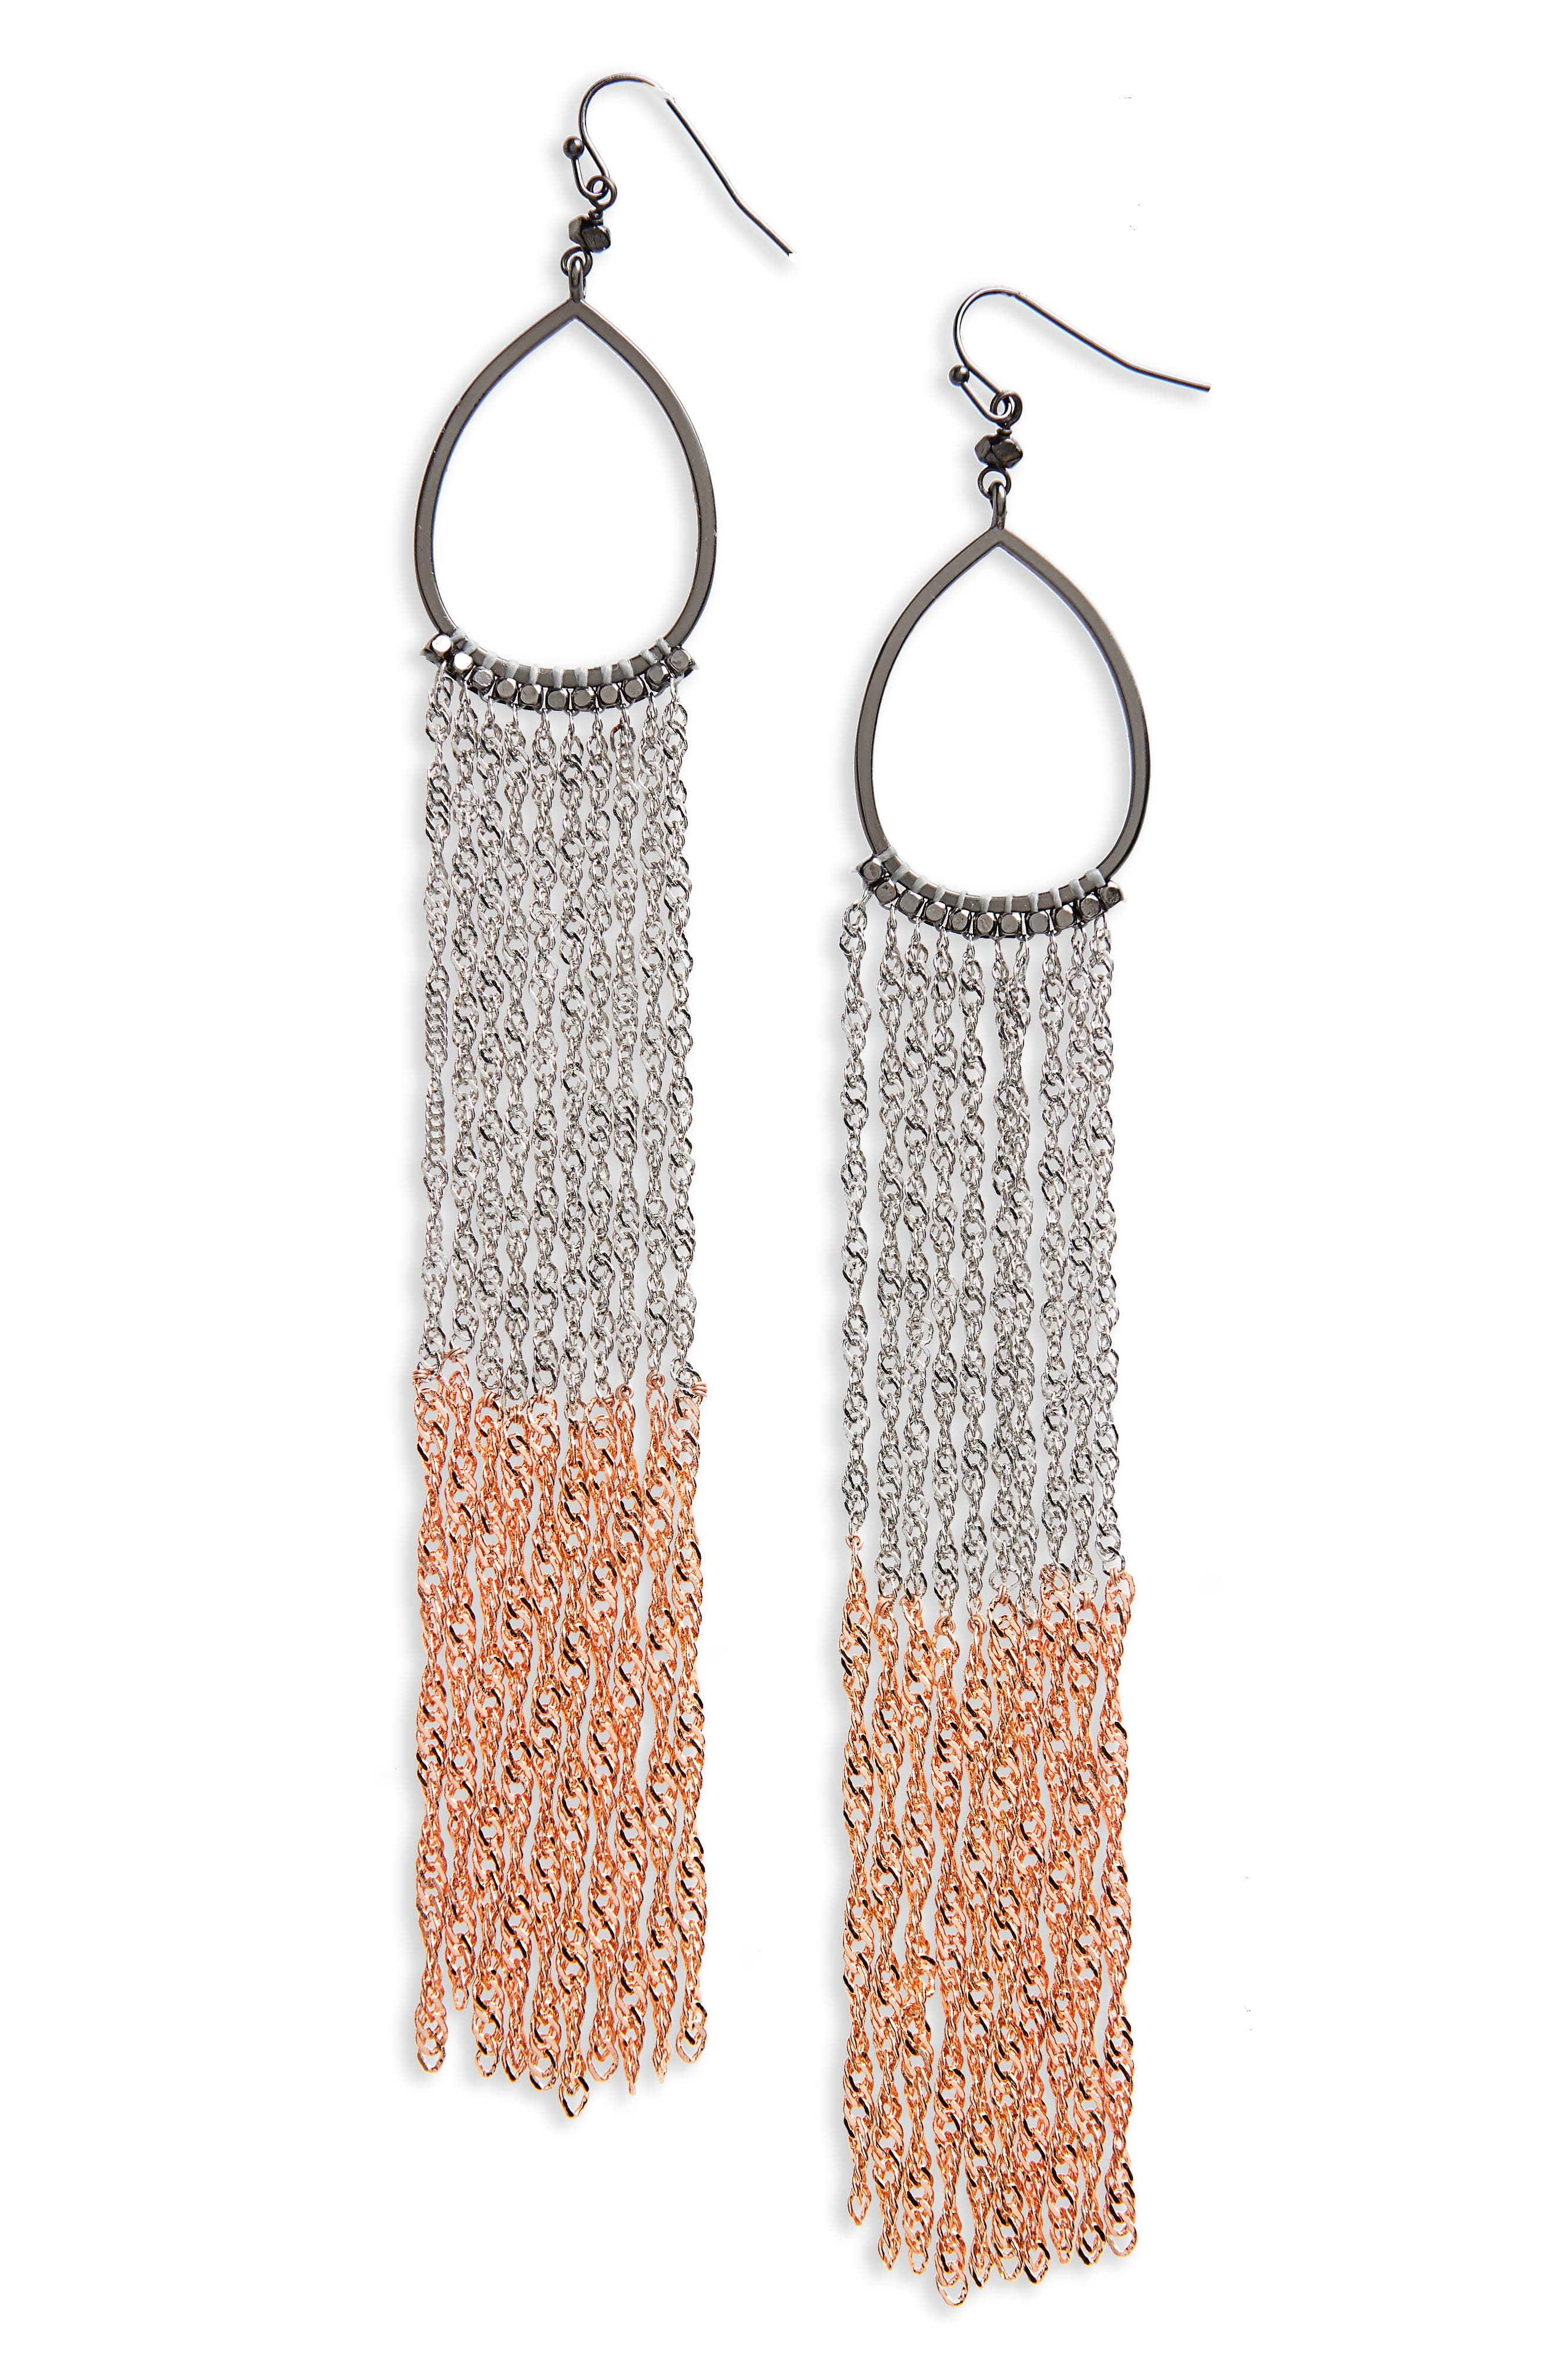 Alternate Image 1 Selected - Nakamol Design Extra Long Chain Fringe Earrings